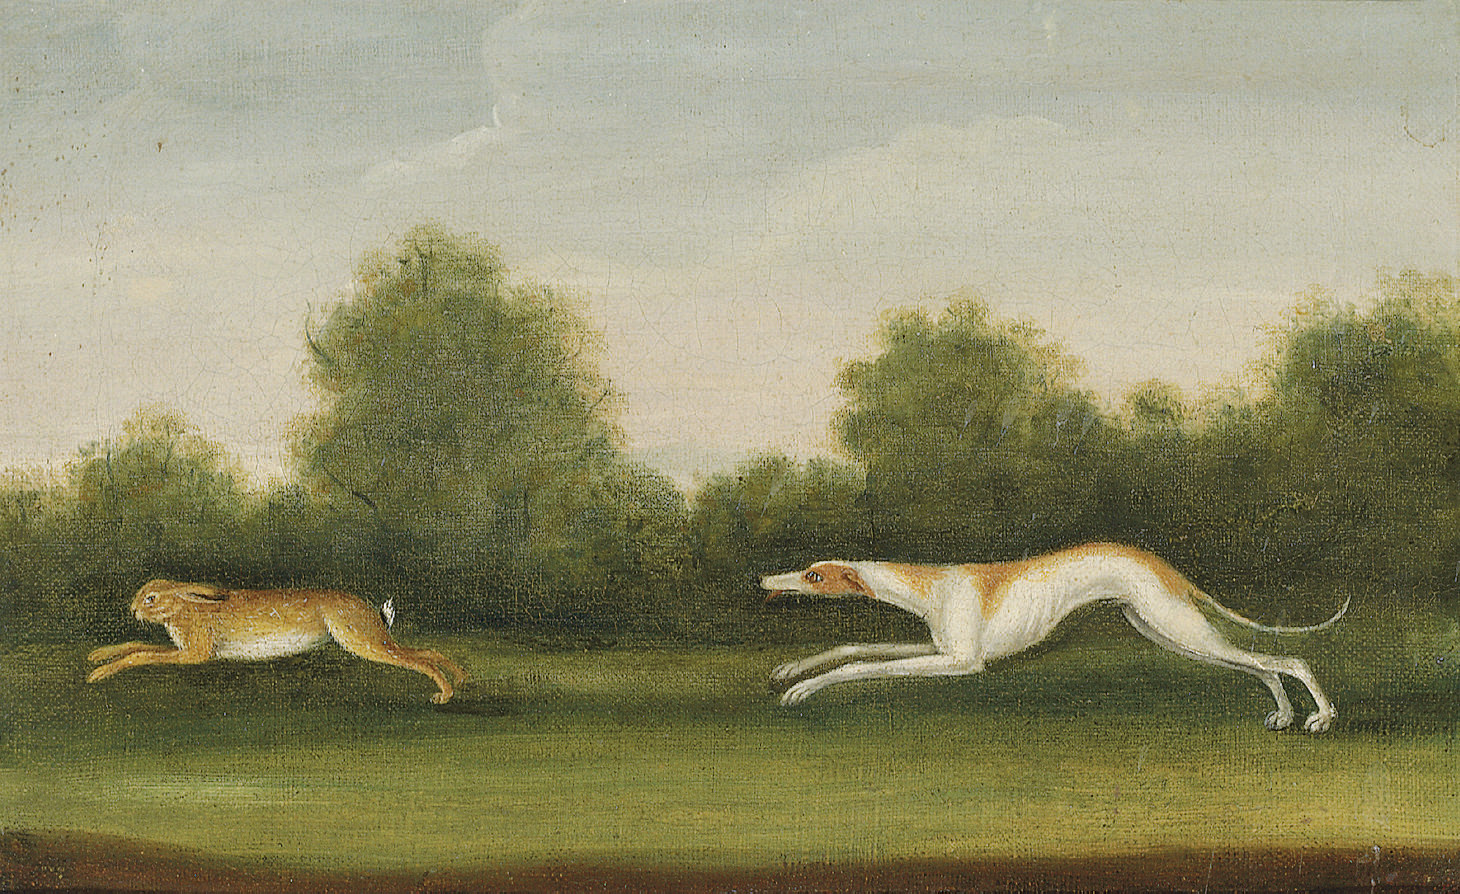 A greyhound chasing a hare